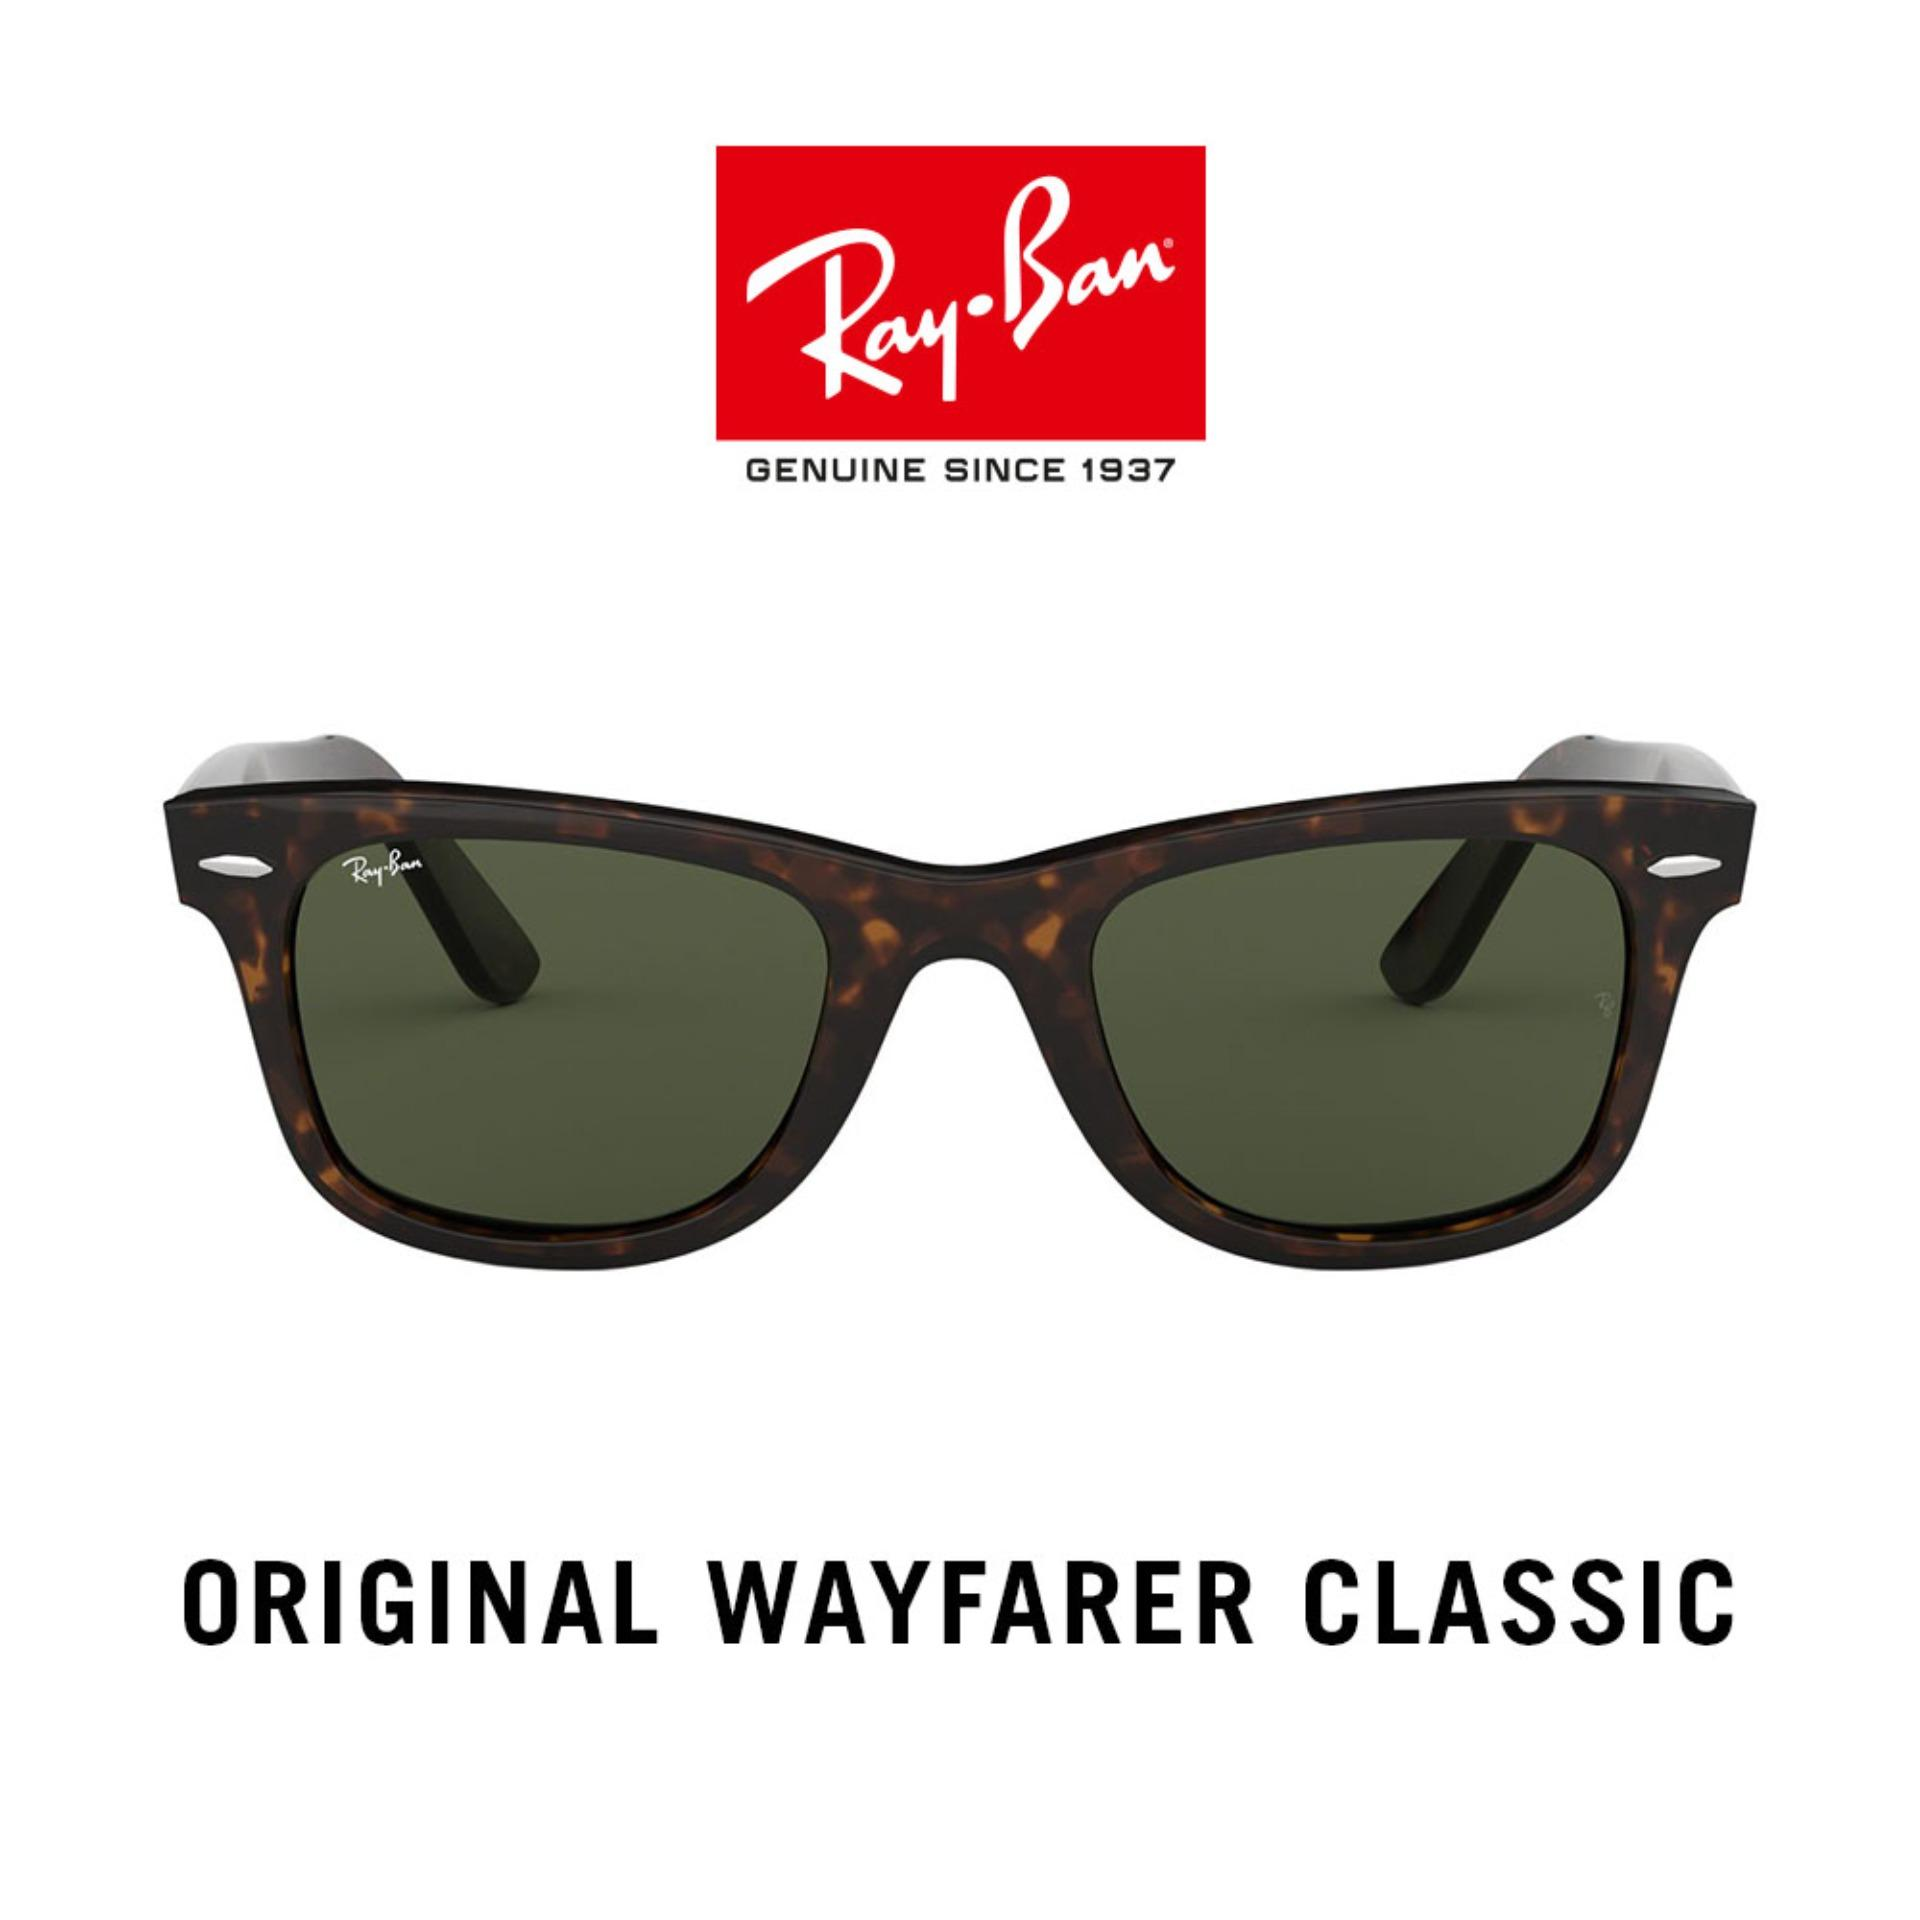 318dbcaf2b Ray Ban Philippines  Ray Ban price list - Shades   Sunglasses for ...